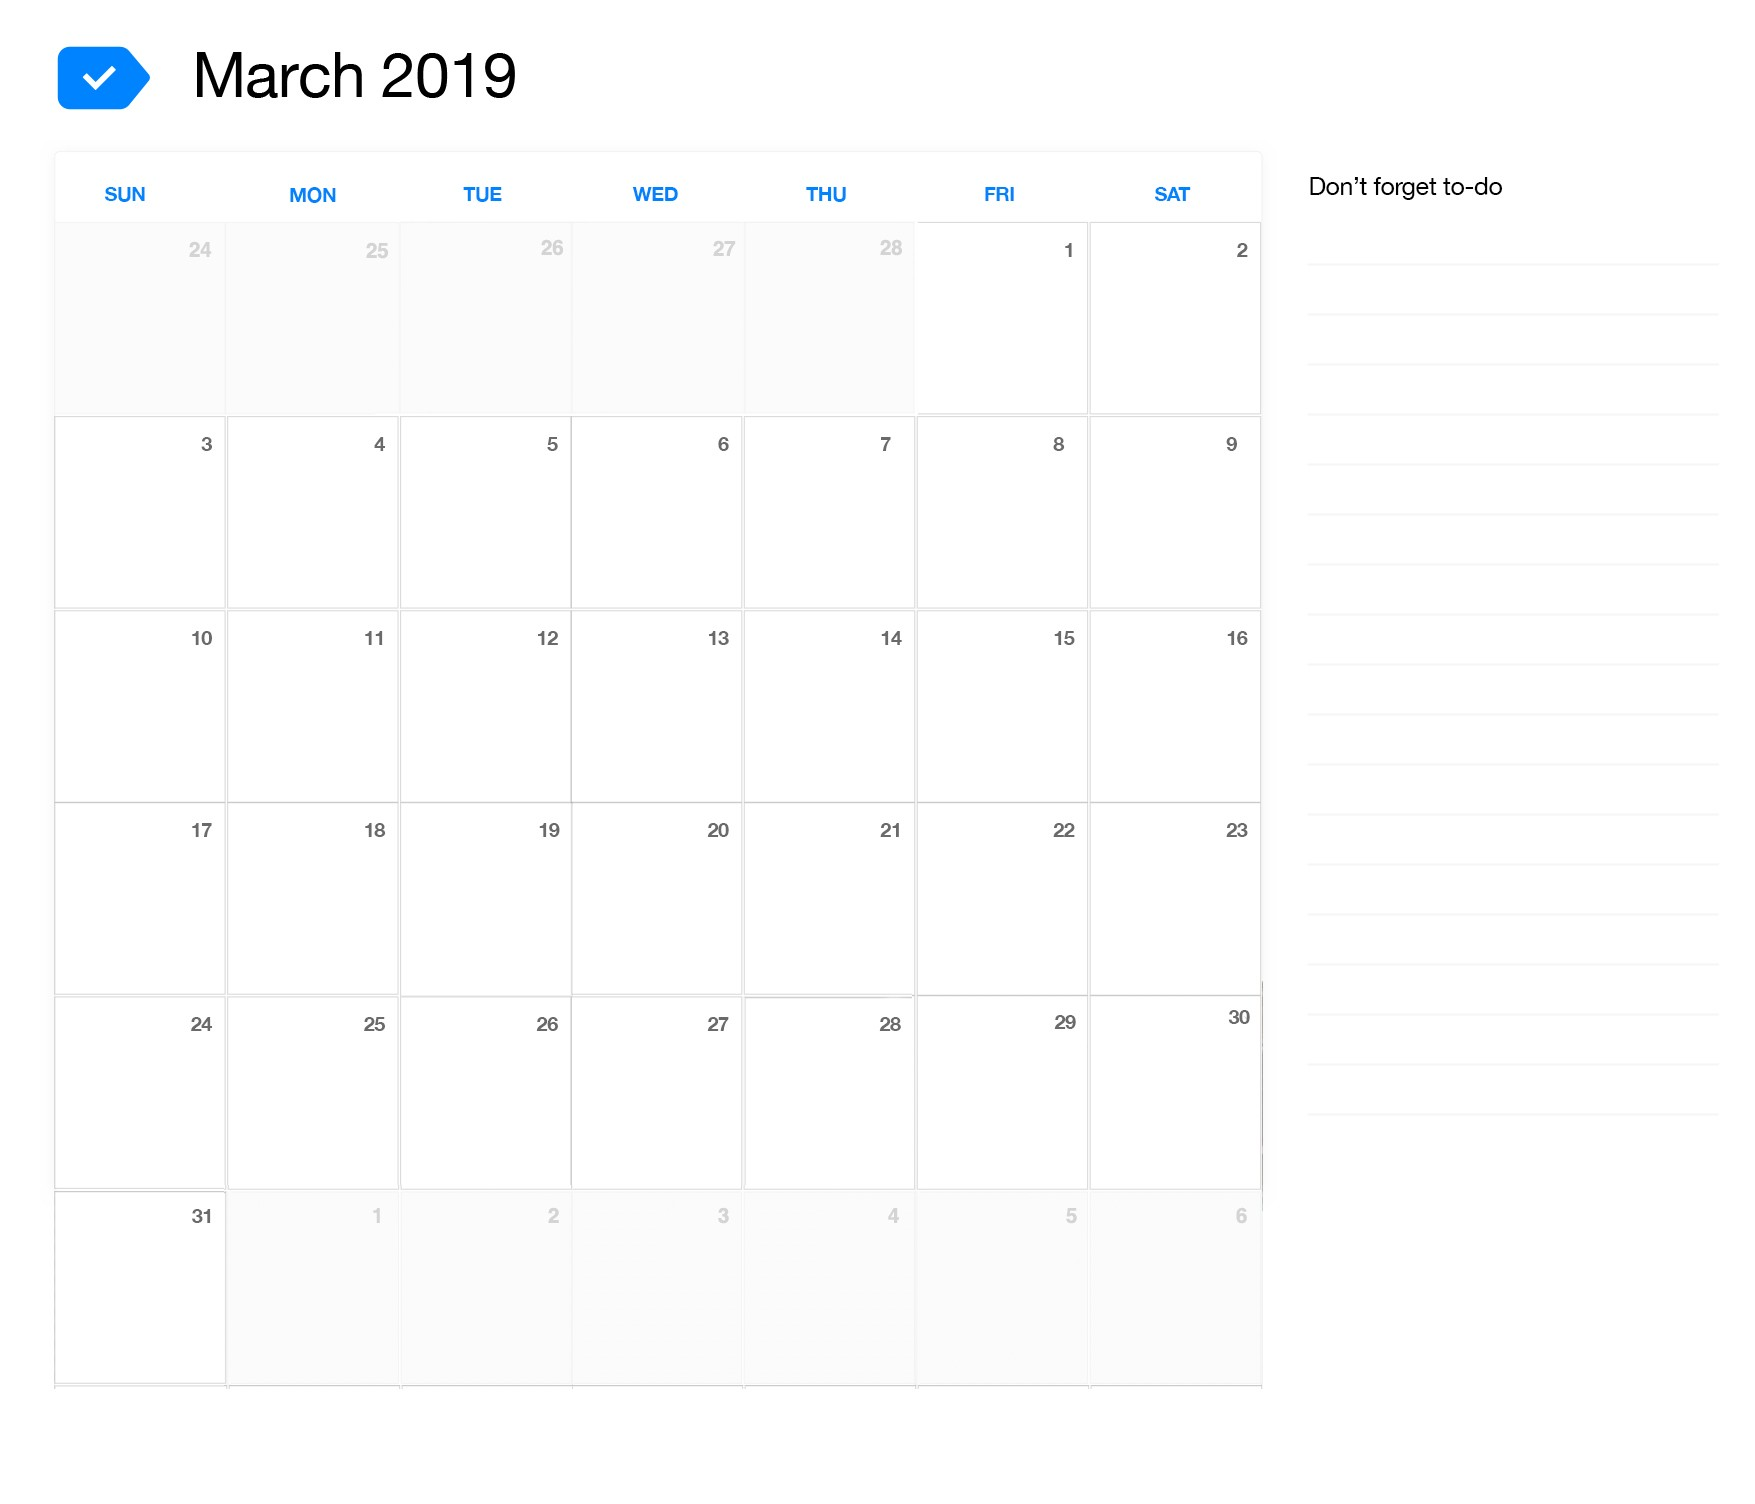 March Calendar 2019 Más Recientes March 2019 Printable Calendar Of March Calendar 2019 Más Recientes March 2019 Wall Calendar Colorful Sketch Horizontal Template Letter